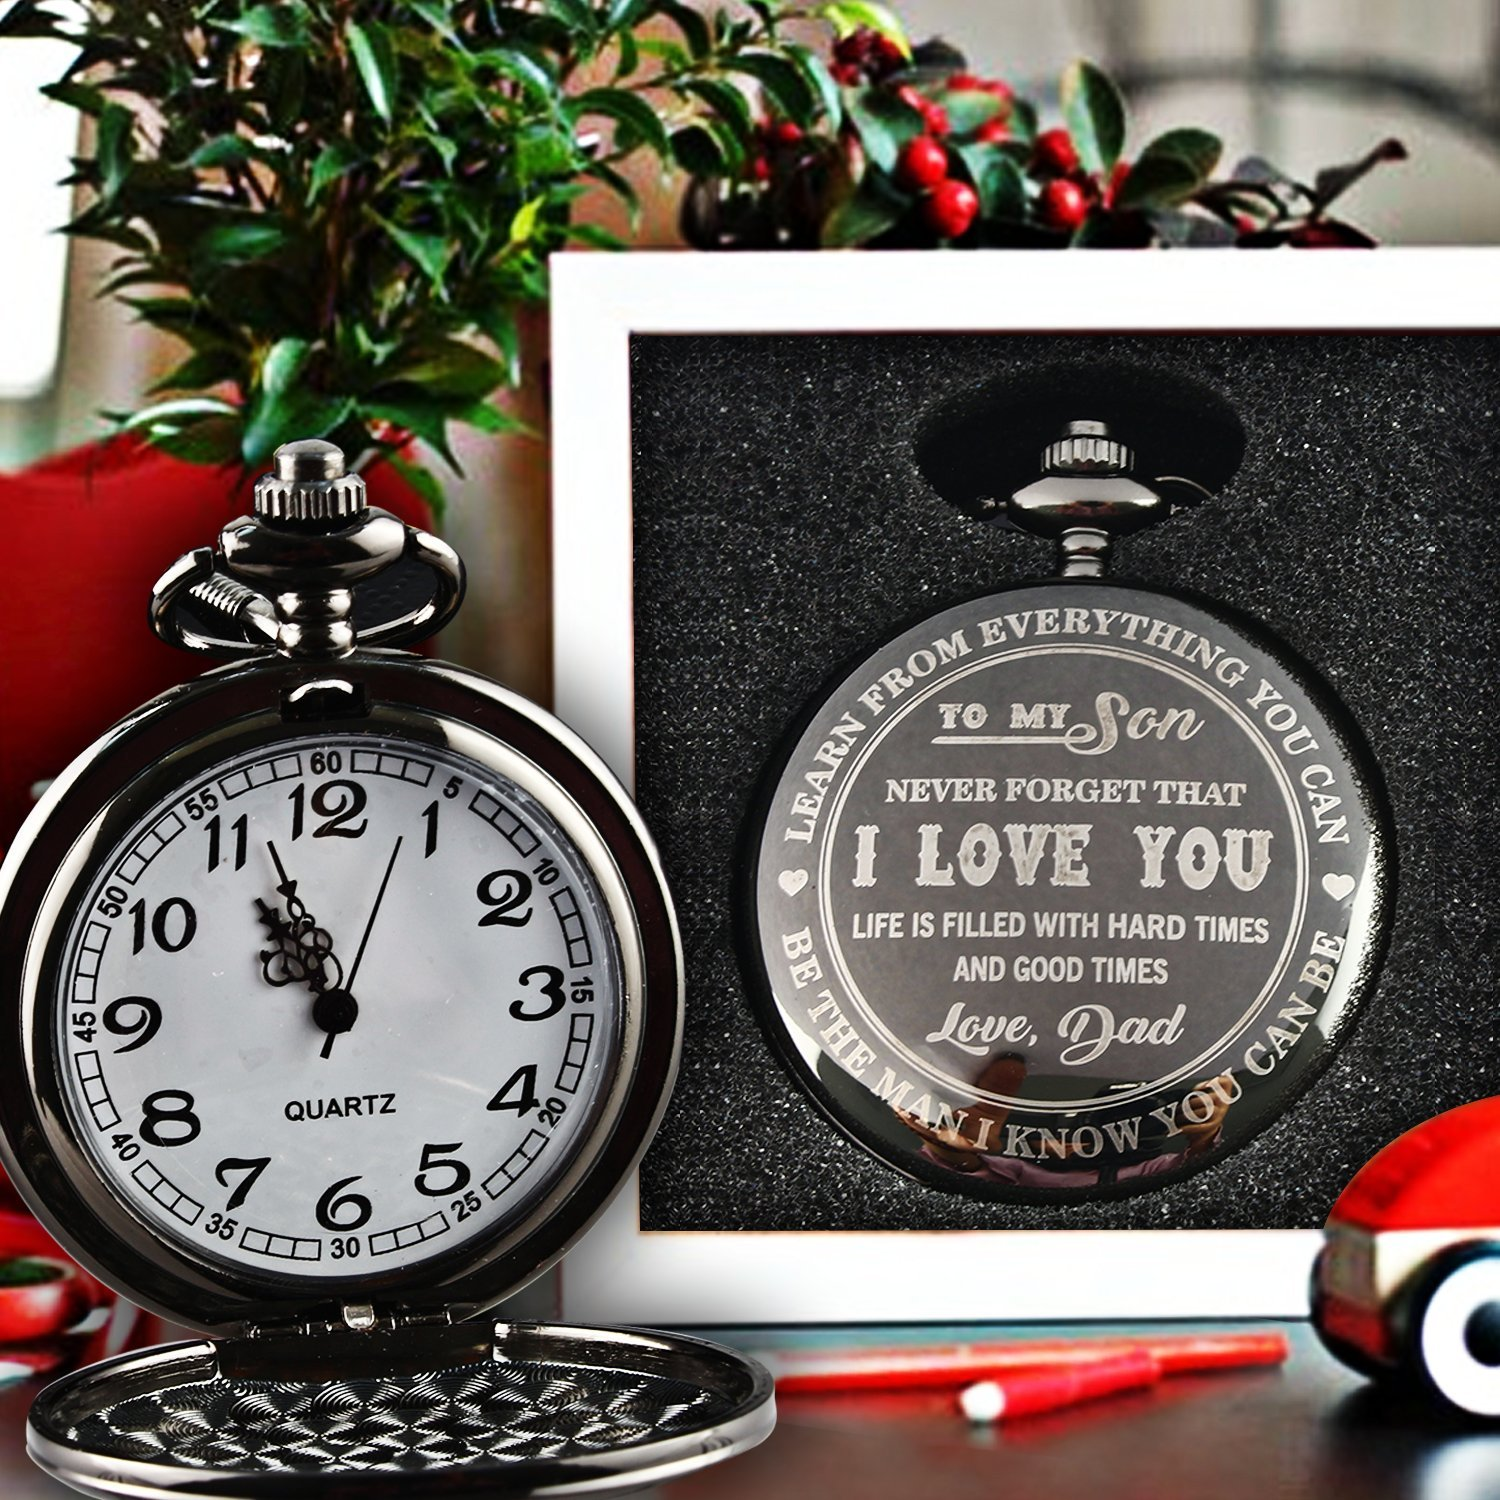 To My Son - Love Dad Pocket Watch with chain Birthday Gift Ideas To Son From Father - Black by GPlee Gift (Image #2)